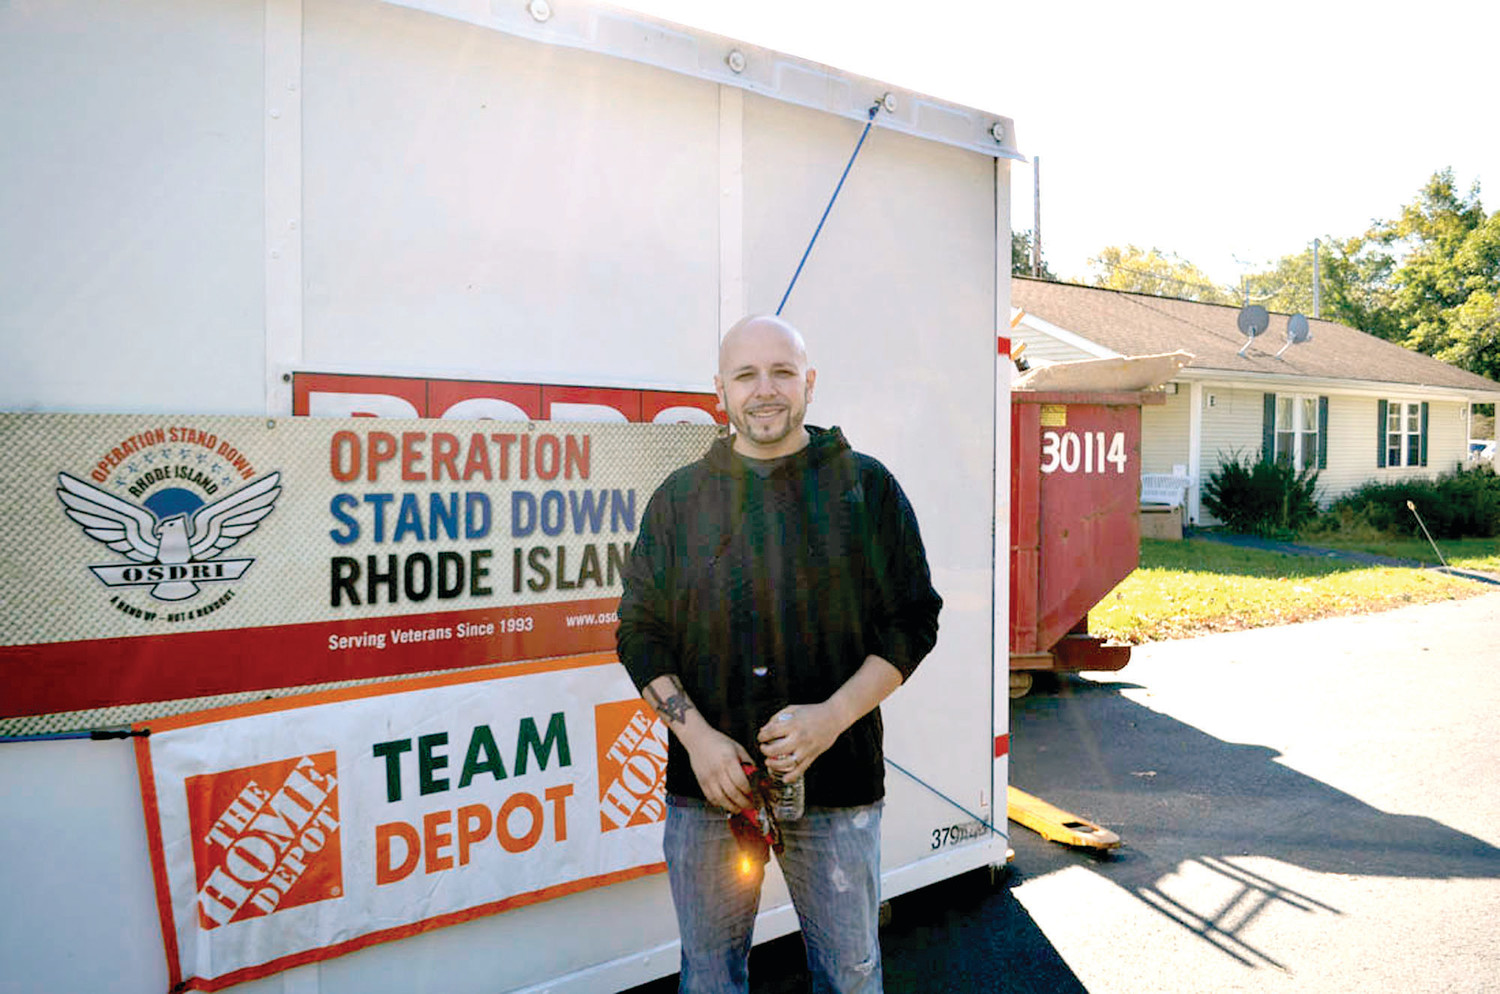 "VALUABLE VOLUNTEER: Errol Ruginski, the ""Team Depot"" captain for the Warwick Home Depot store, volunteered at Operation Stand Down Rhode Island to make improvements to veterans' housing."